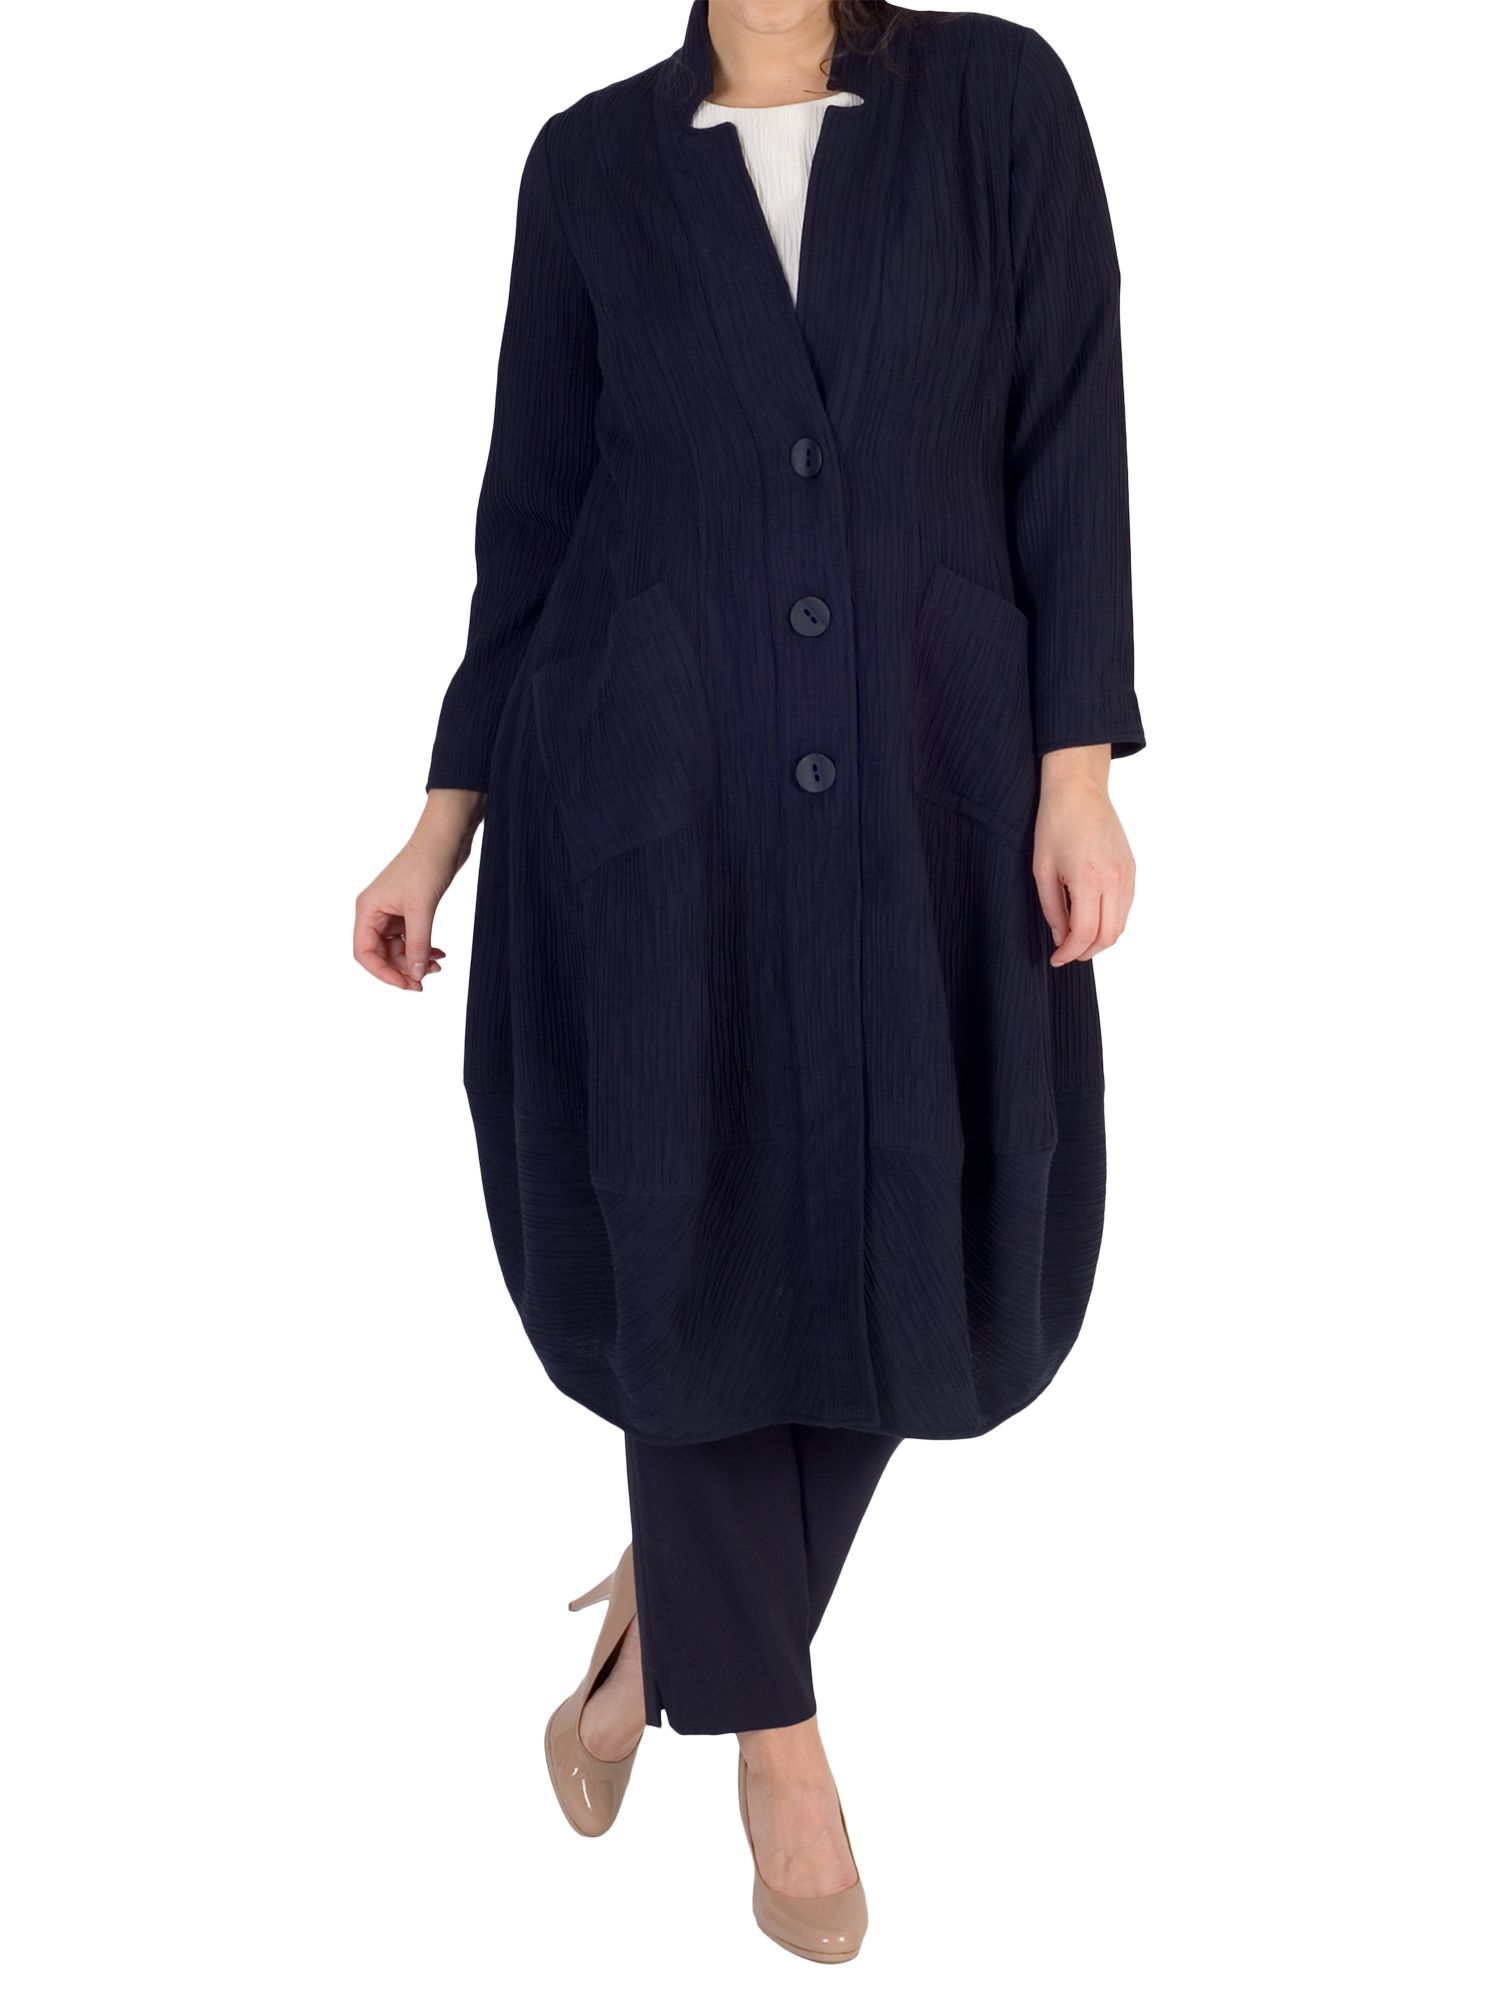 Chesca Chesca Textured Jacquard Notch Neck Coat, Navy